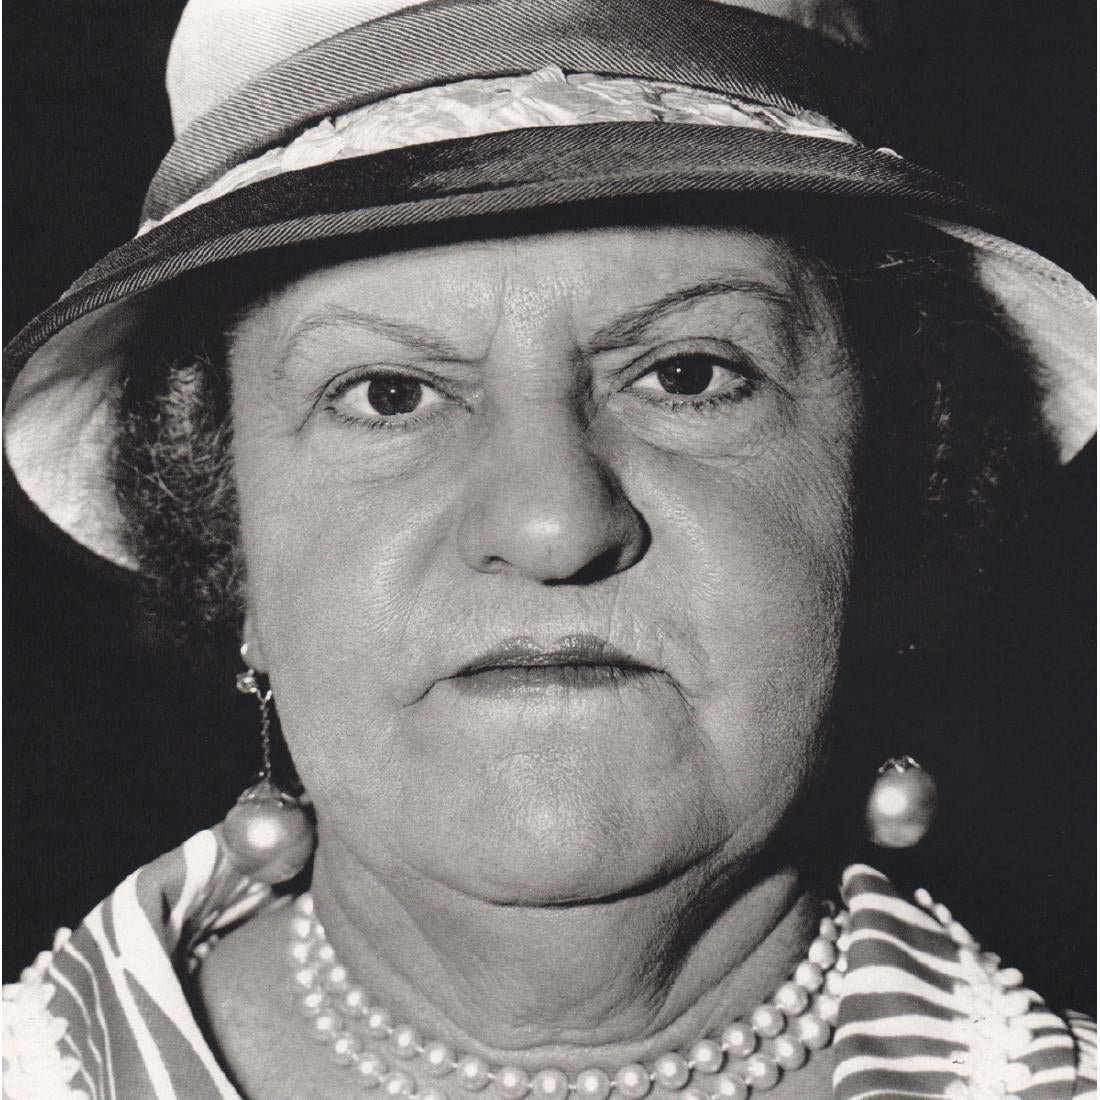 Diane Arbus - Woman with Pearls, NYC 1967